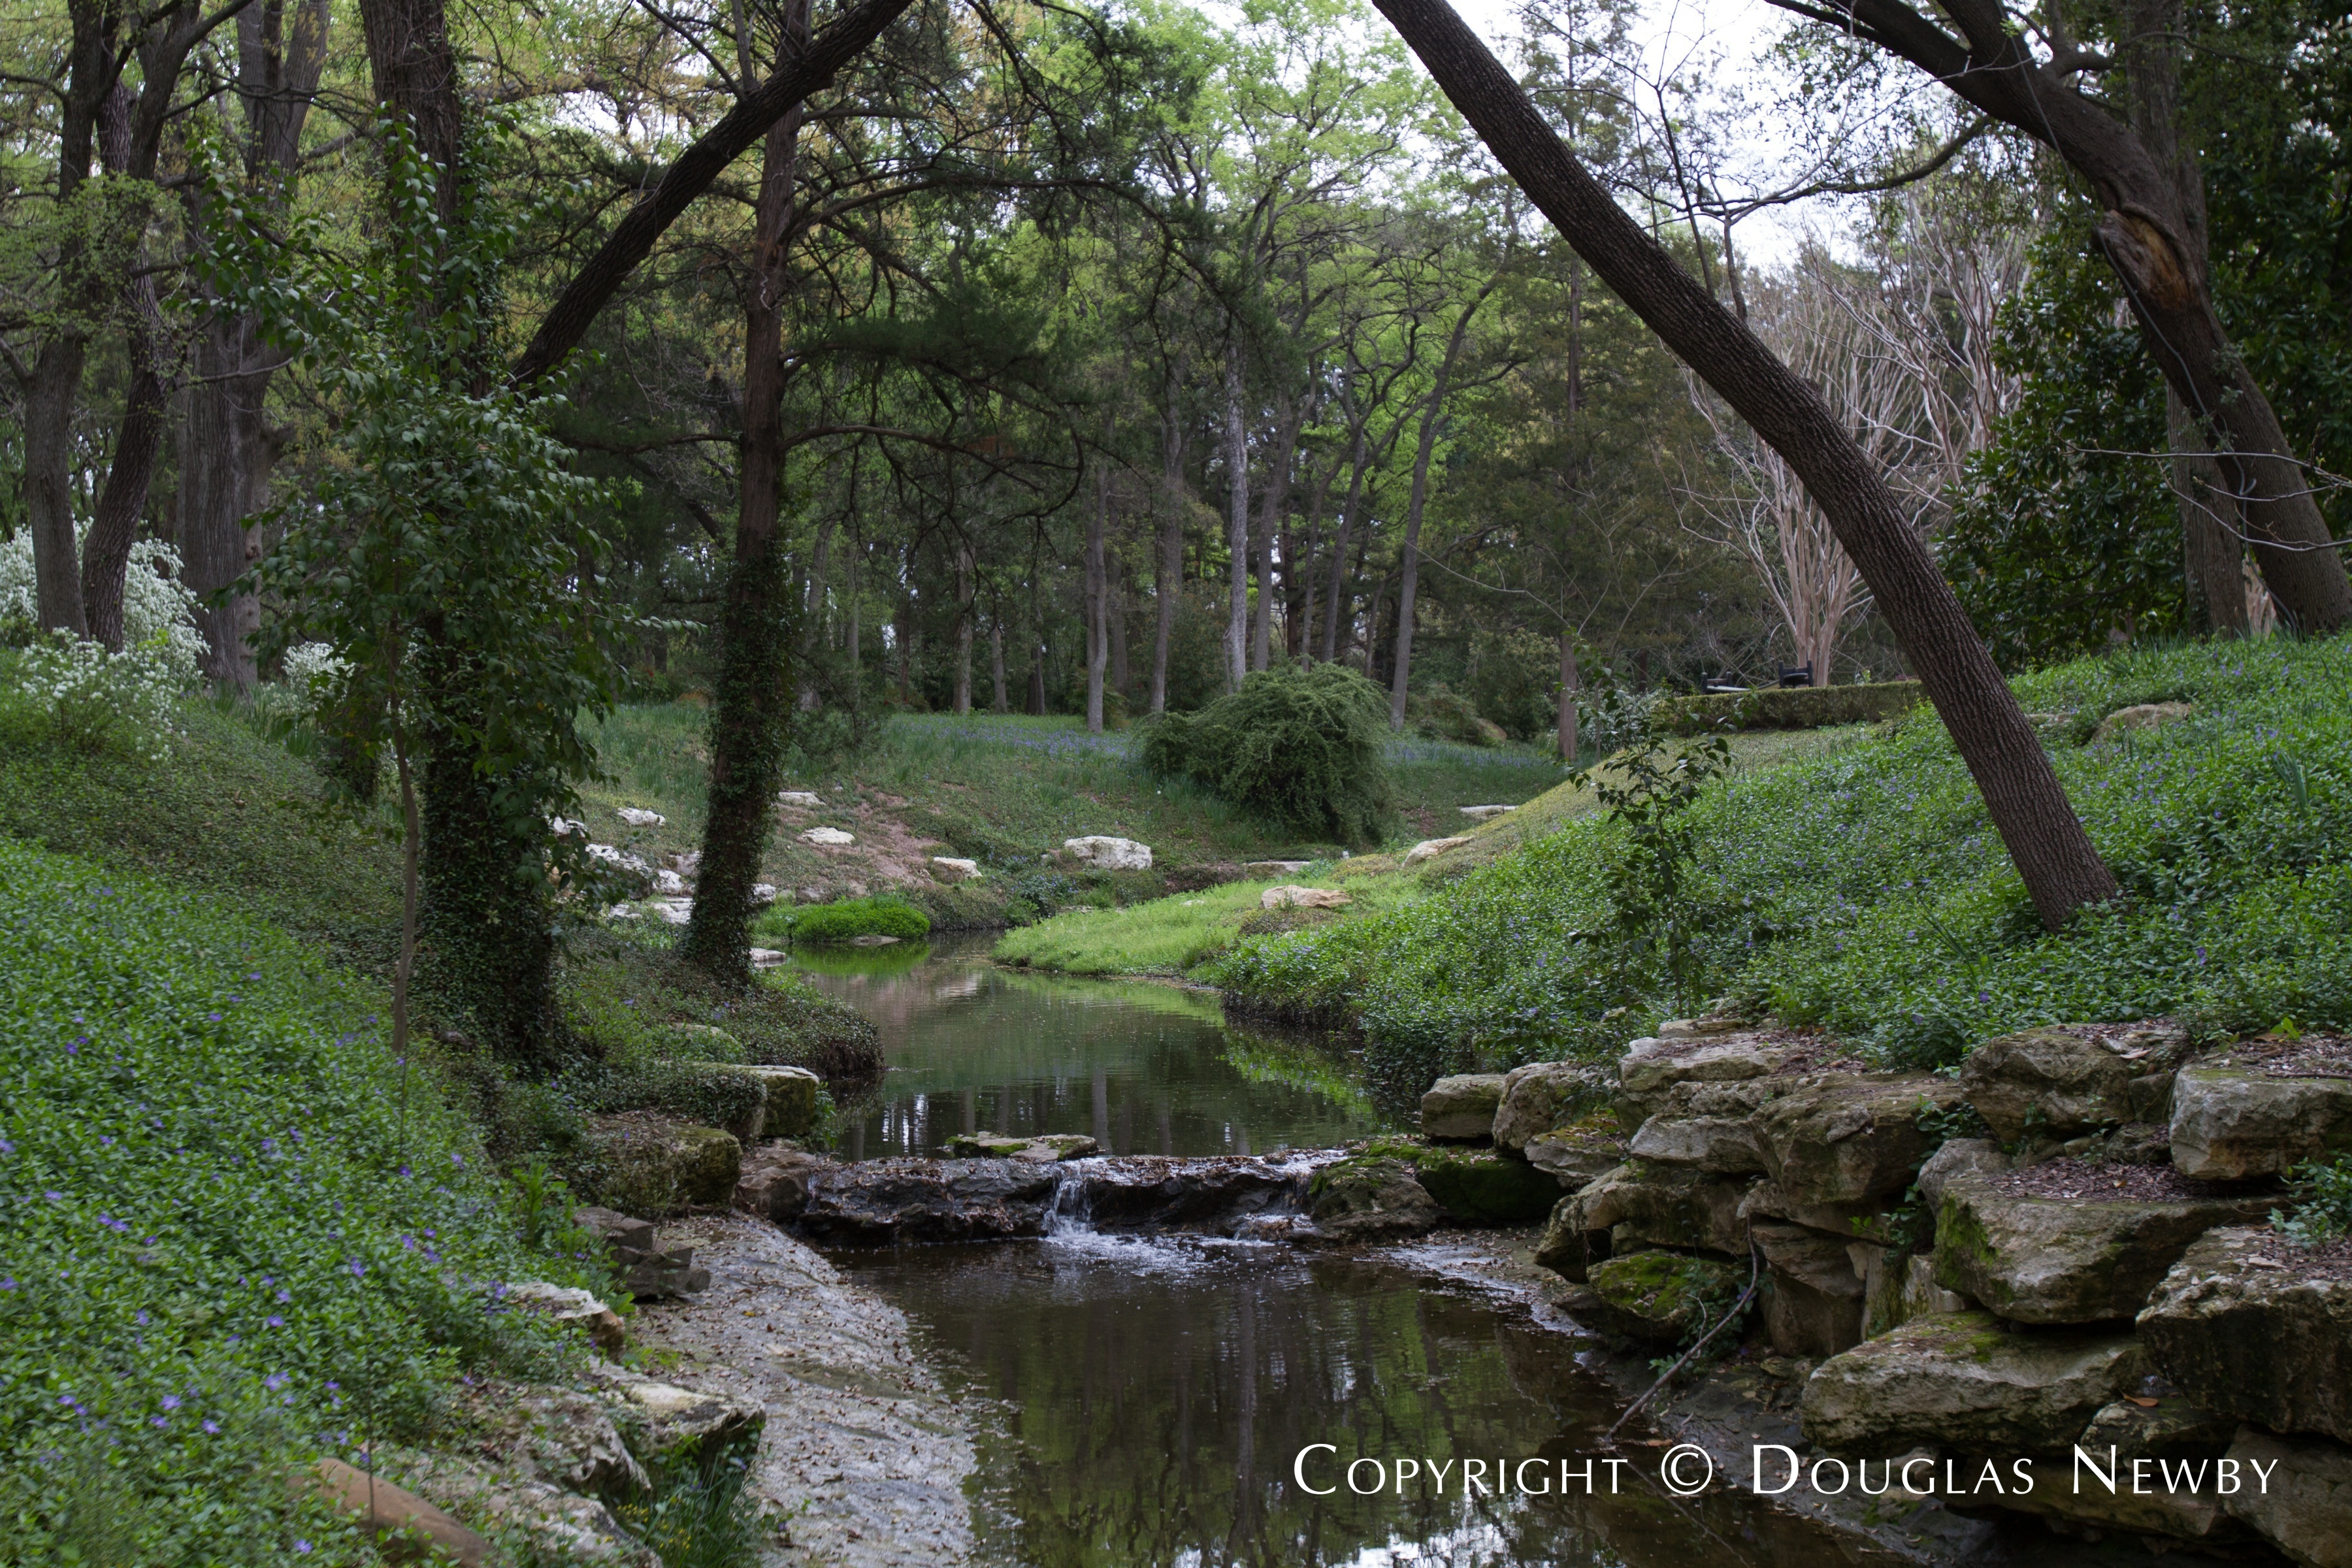 Stream Running Through Forest on Dallas Estate Property